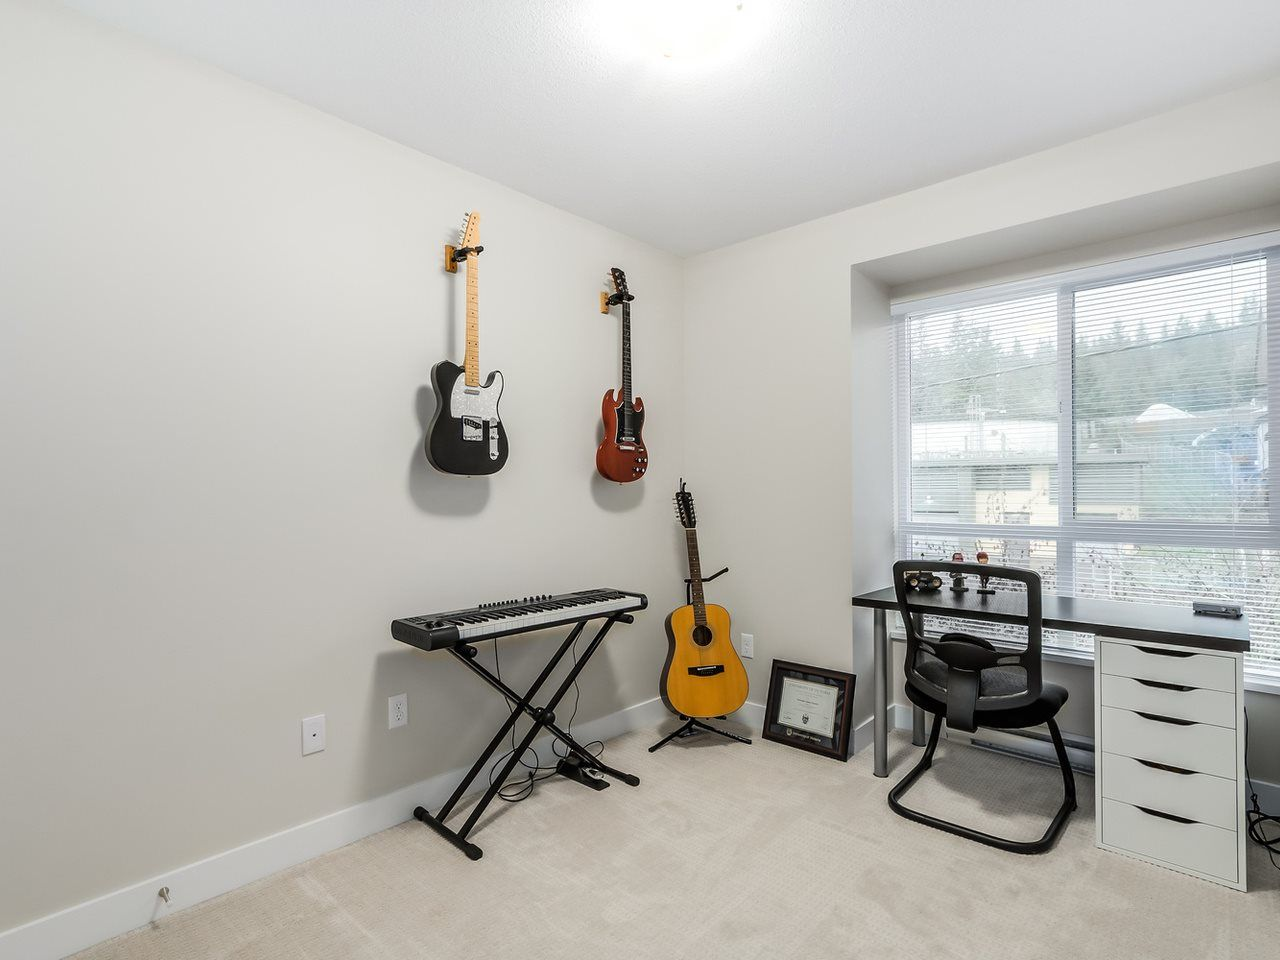 """Photo 16: Photos: 102 1480 SOUTHVIEW Street in Coquitlam: Burke Mountain Townhouse for sale in """"CEDAR CREEK NORTH"""" : MLS®# R2016018"""